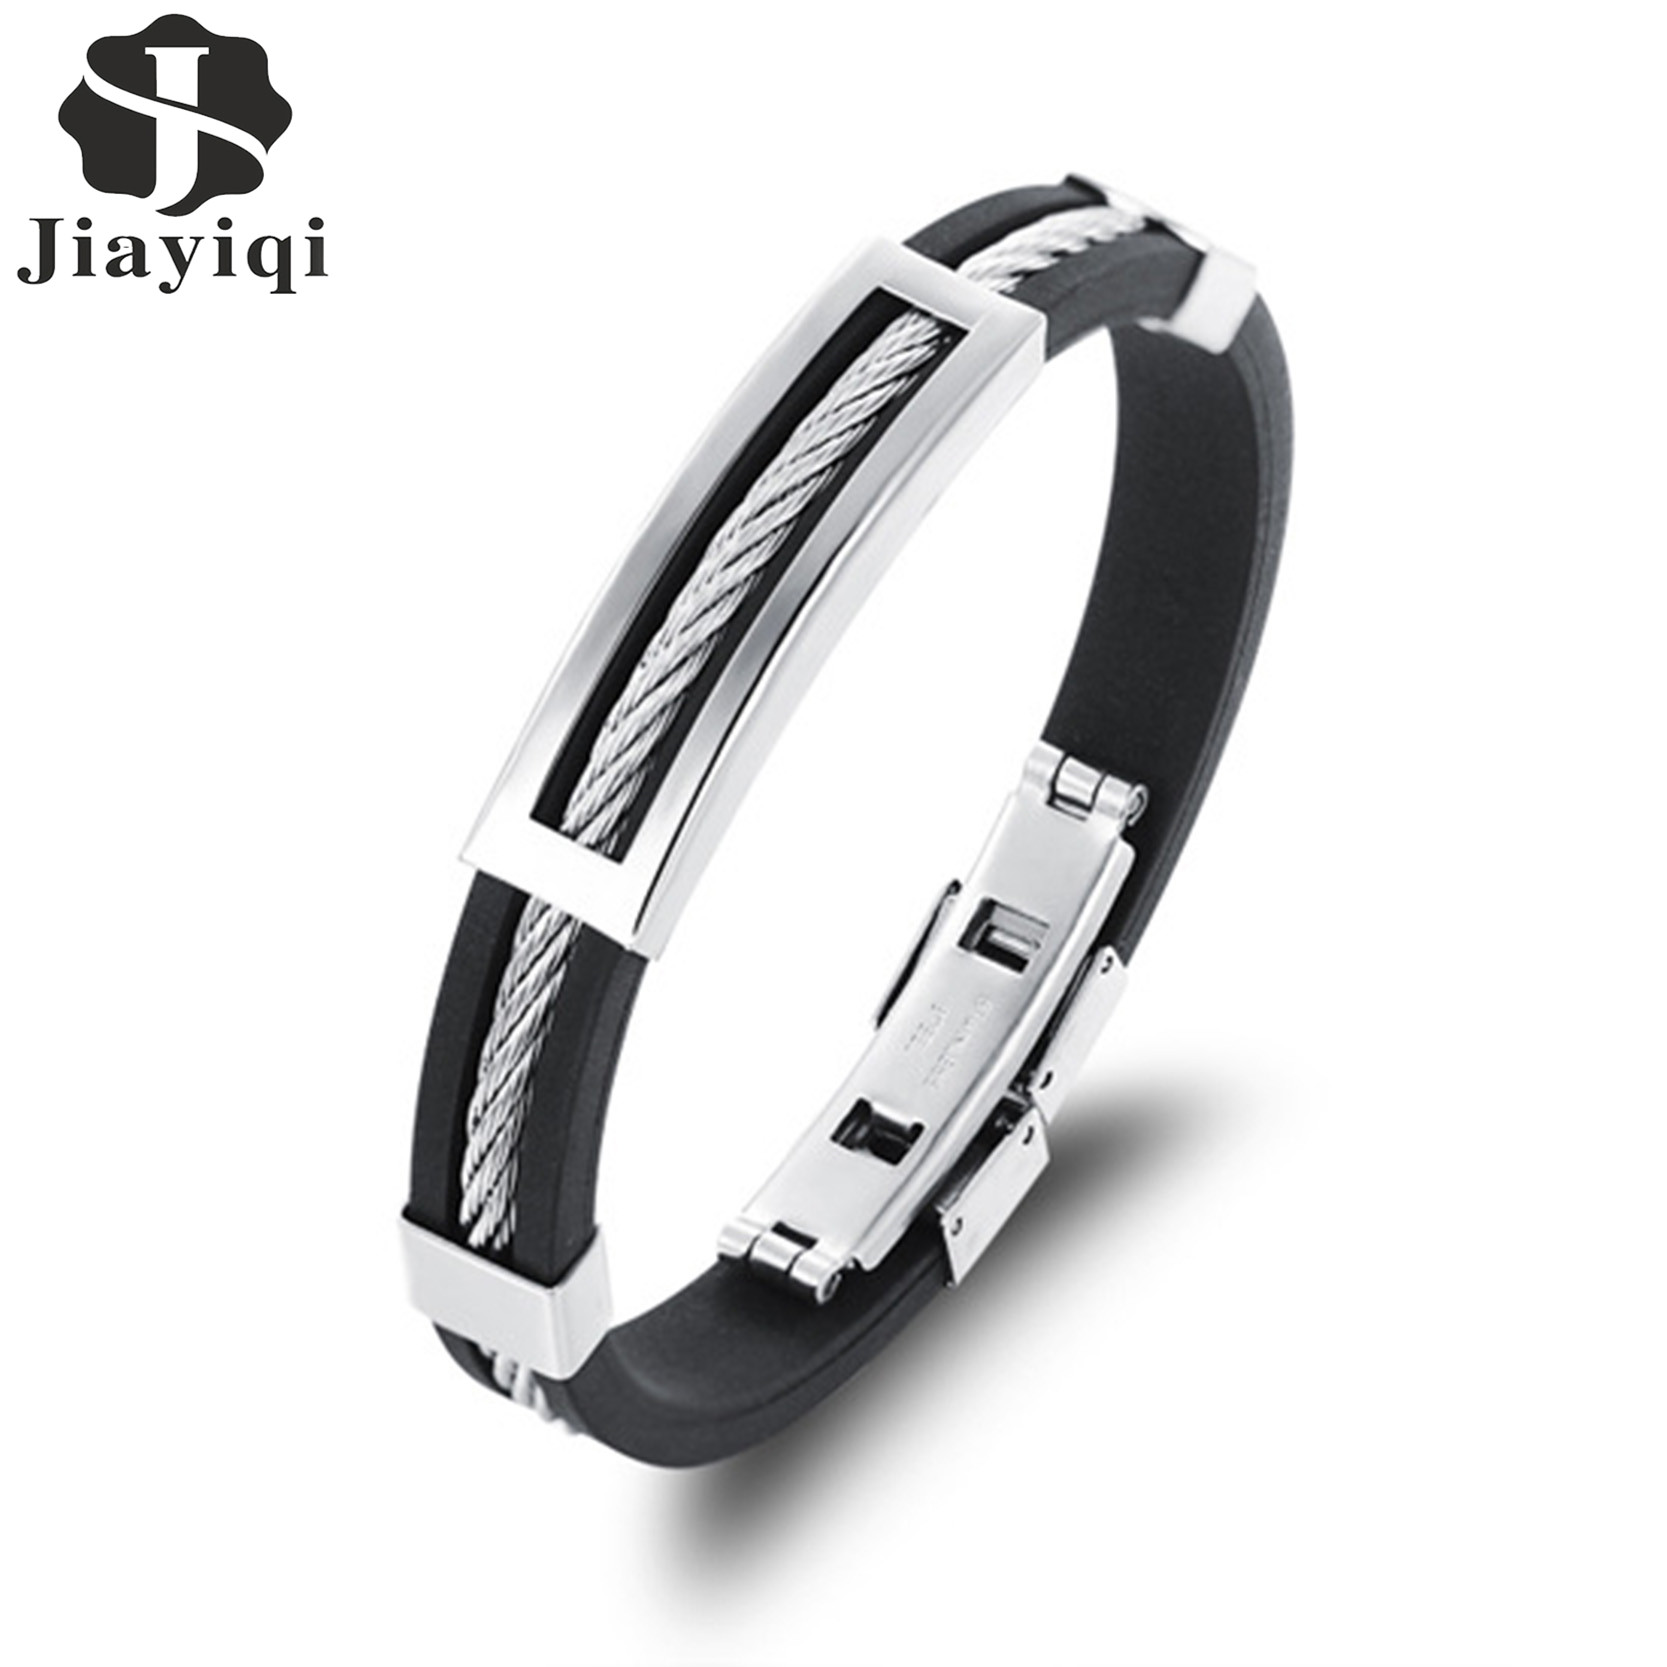 Jiayiqi New Mens Bracelets Stainless Steel Black Silicone Bracelets Charm Bracelet Male Bangle For Men Jewelry 2017 Silver Color buy mens string bracelets